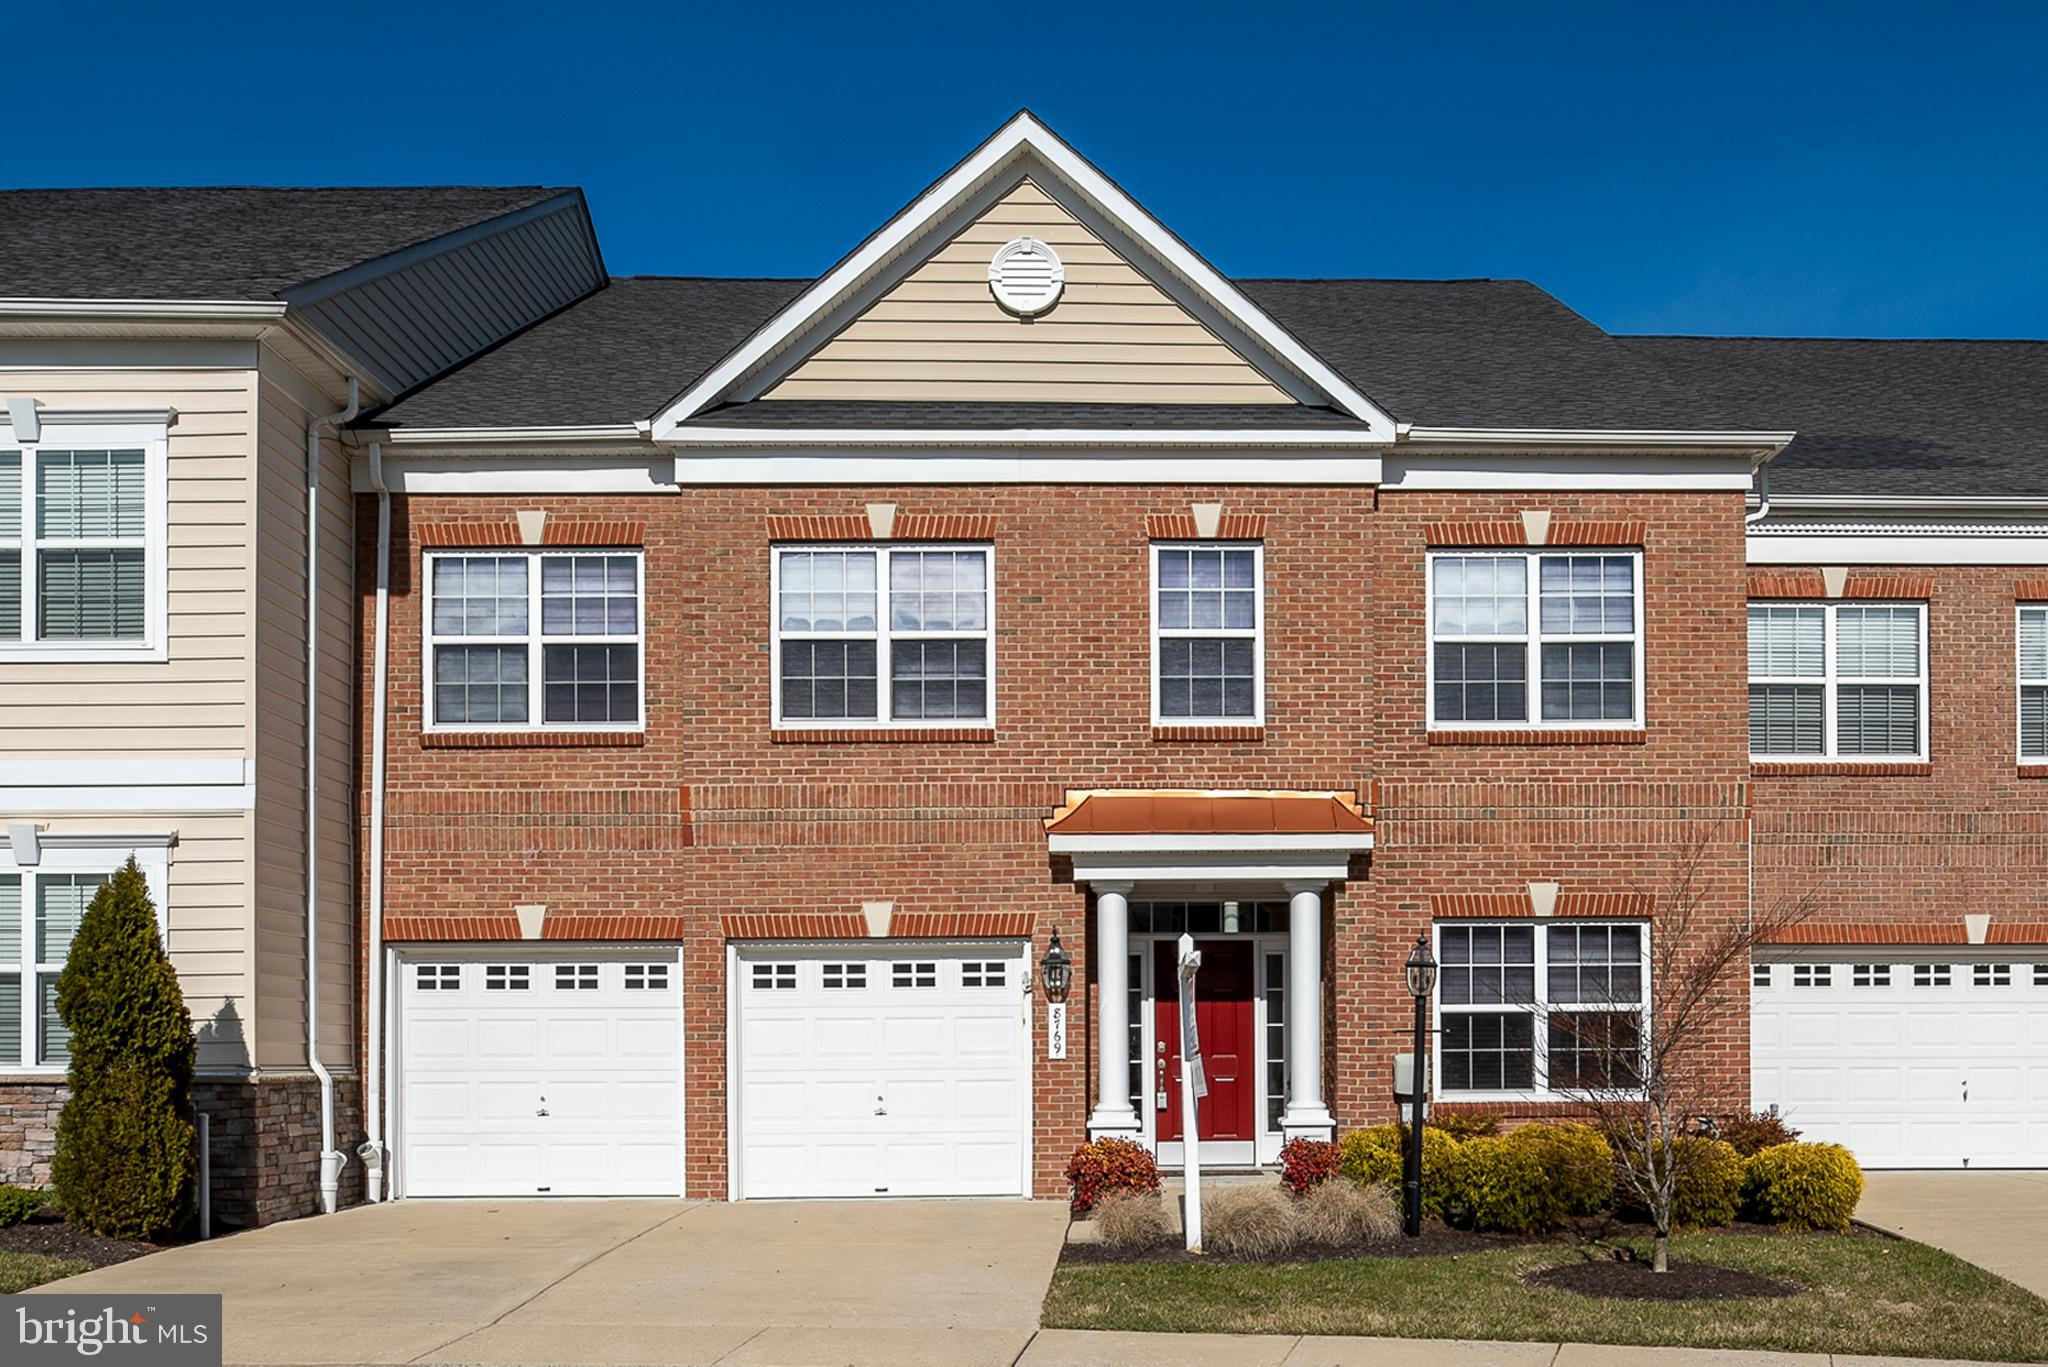 8769 SAGE BRUSH WAY 42, COLUMBIA, MD 21045